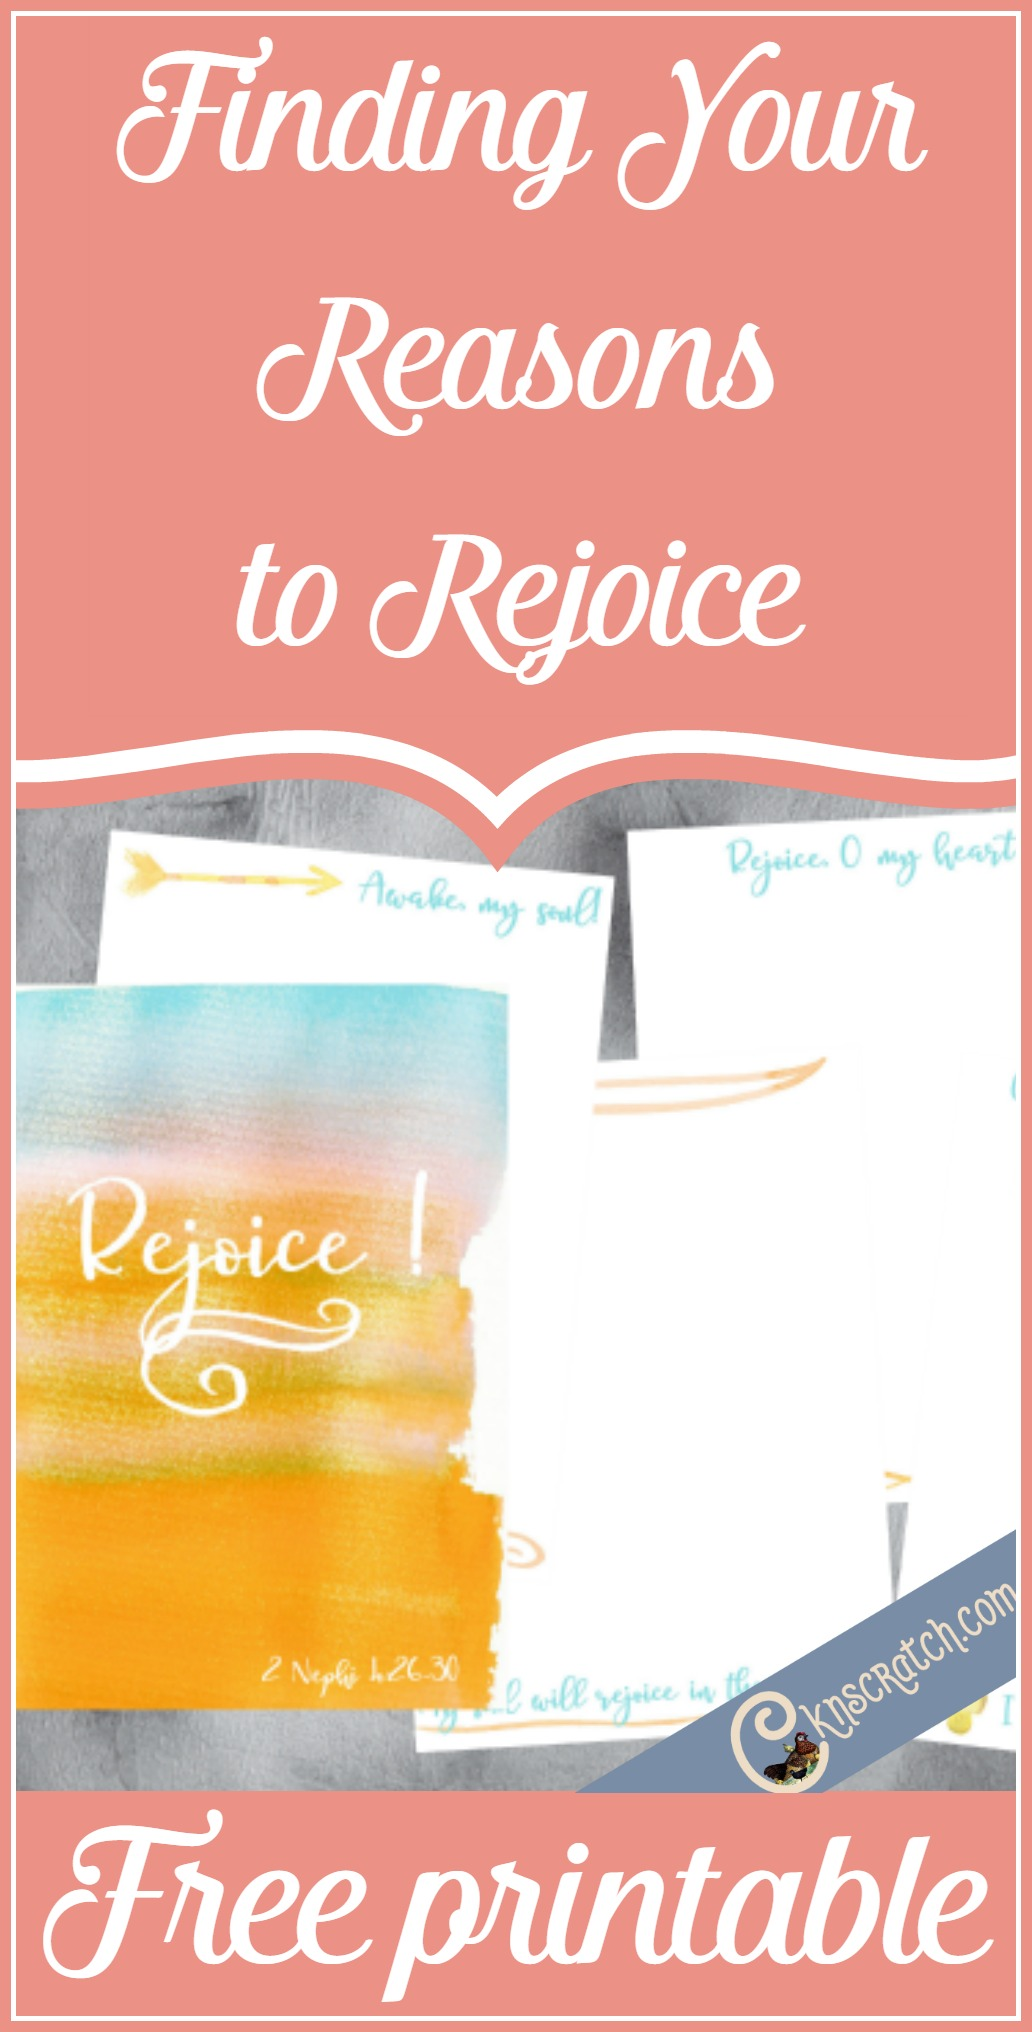 Find a reason to rejoice everyday. Free scripture printable for 2 Nephi 4:26-30